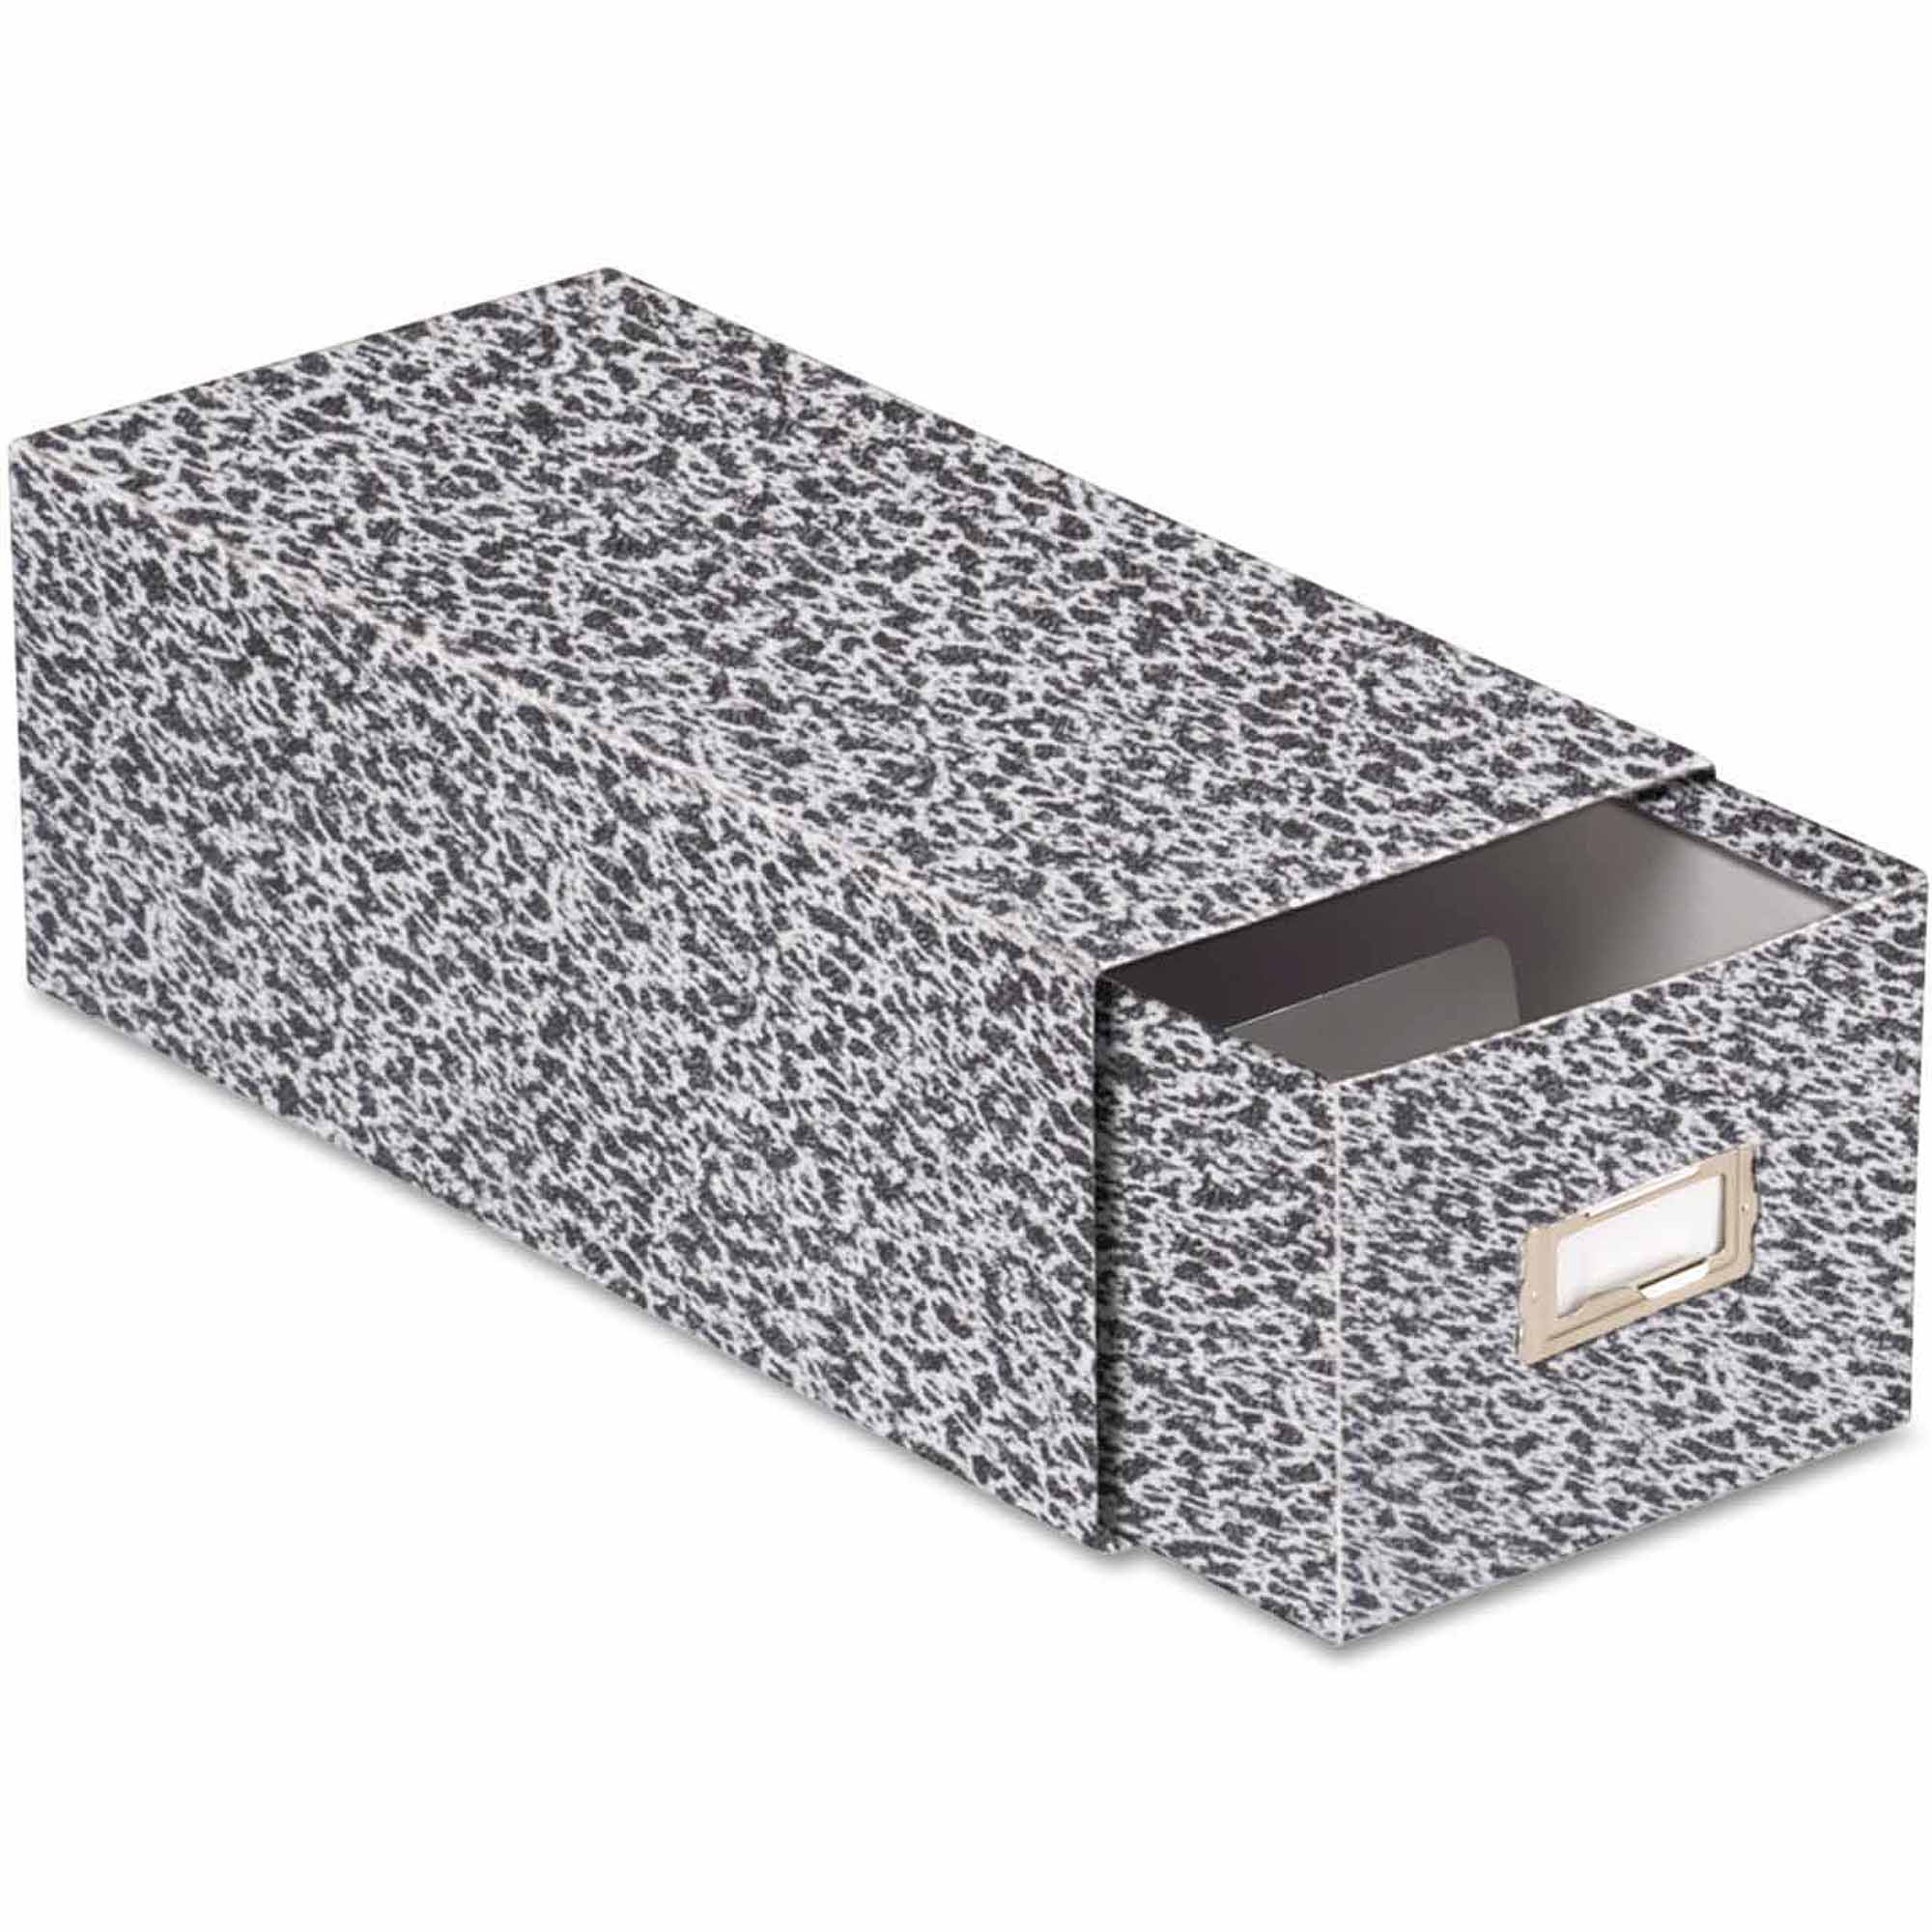 "Oxford Reinforced Board Card File with Pull Drawer, Holds 1500"" 4"" x 6"" Cards, Black Marble"